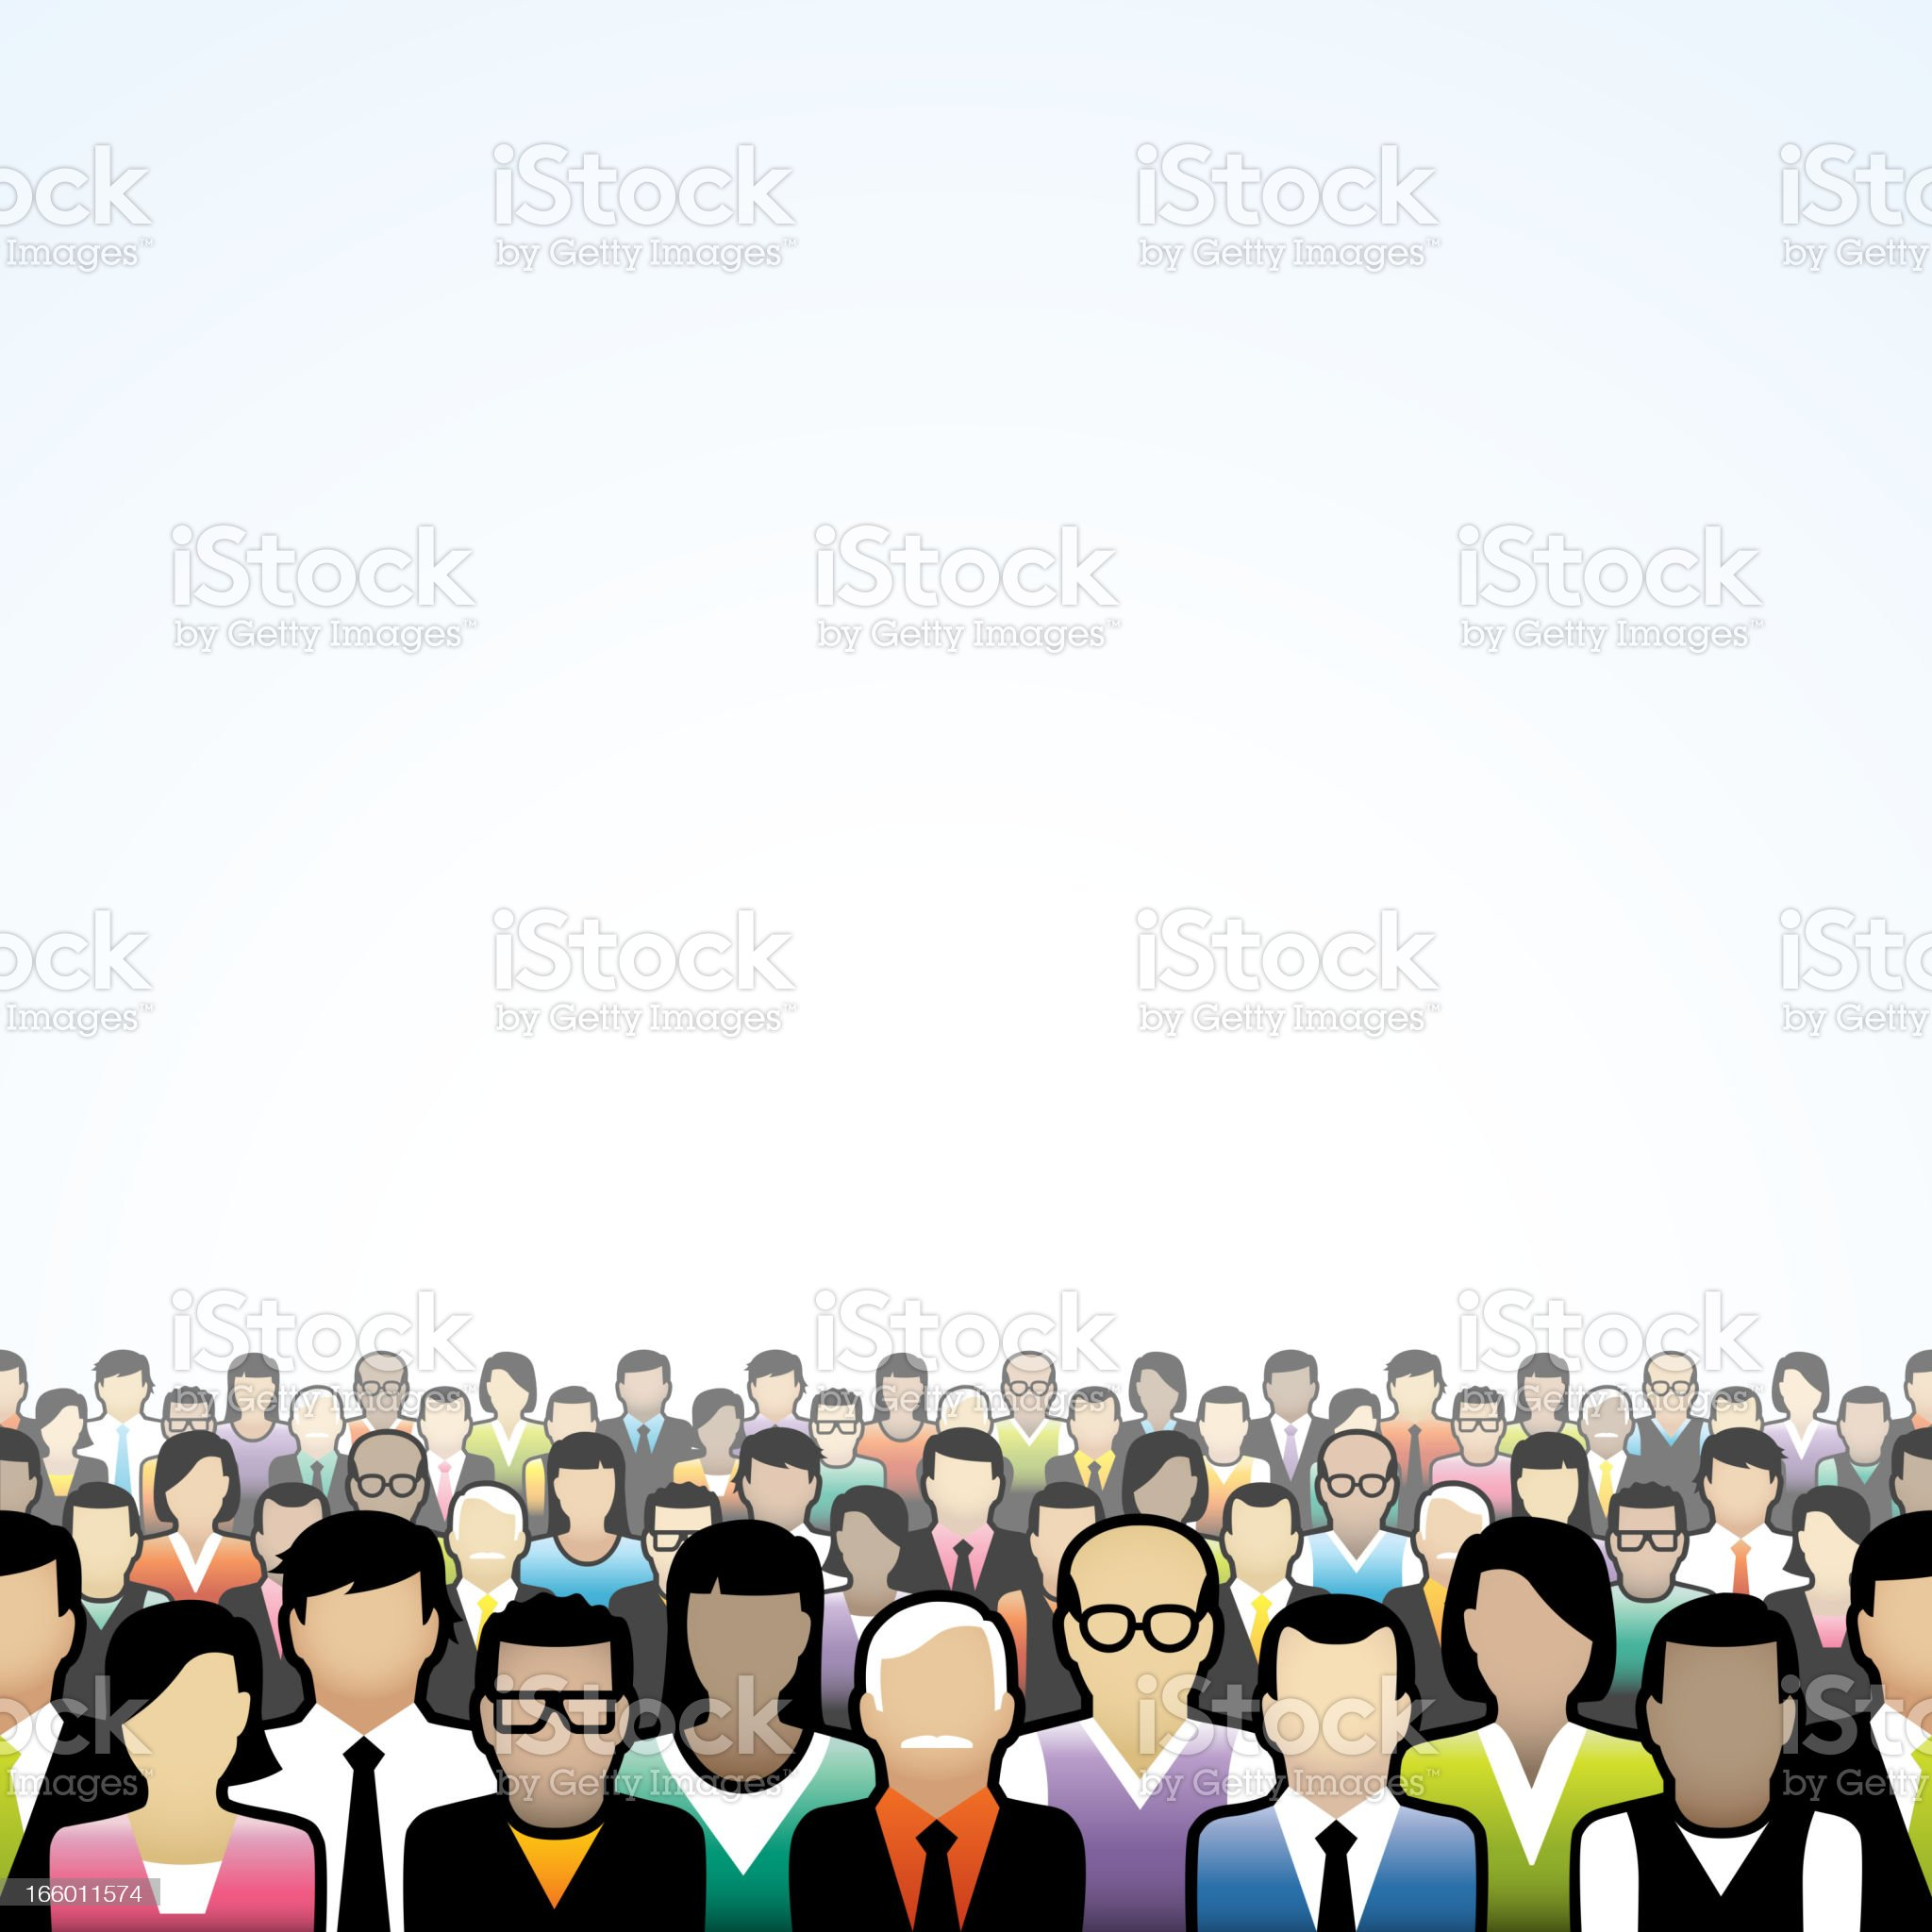 Seamless crowd background royalty-free stock vector art